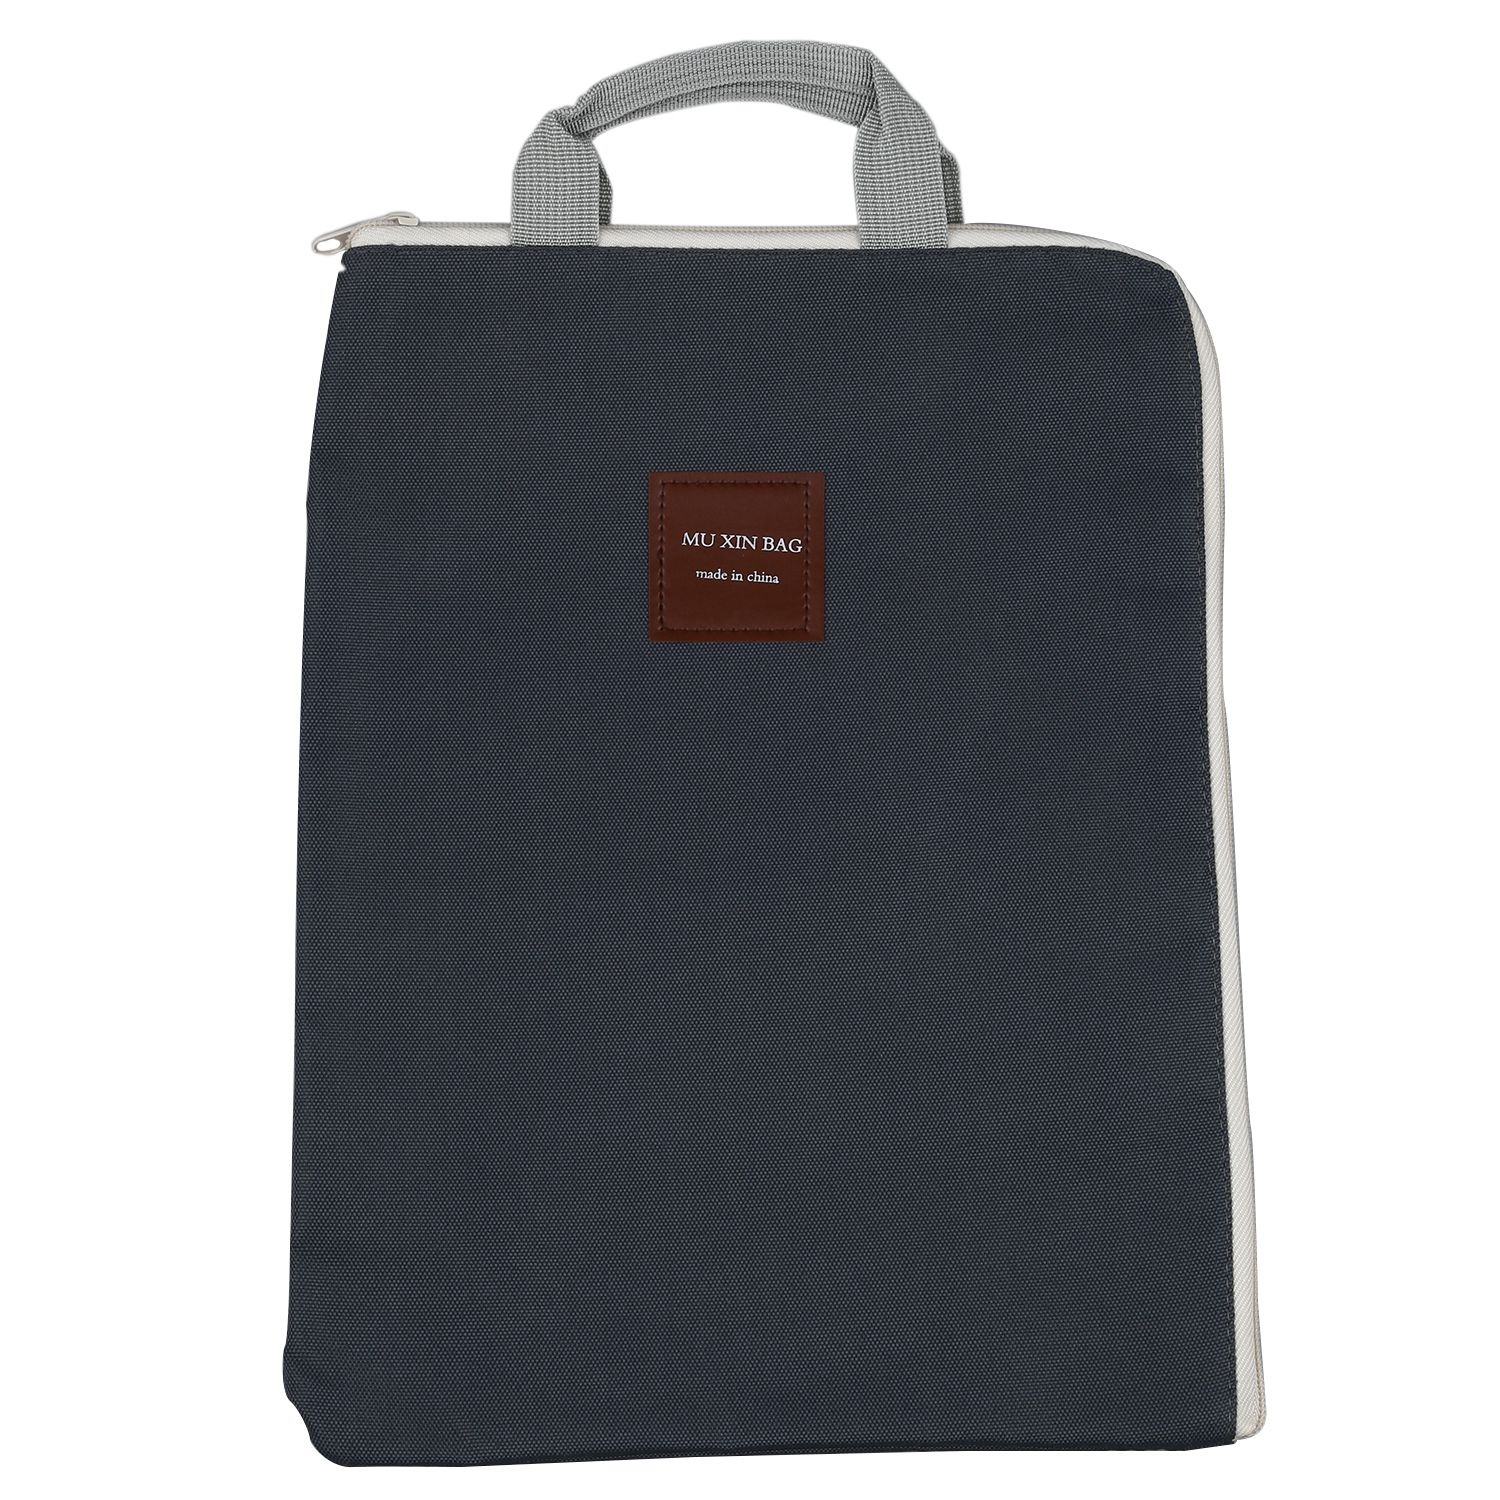 Simple Solid A4 Big Capacity Document Bag Business Briefcase Storage File Folder For Papers Stationery Student Gift